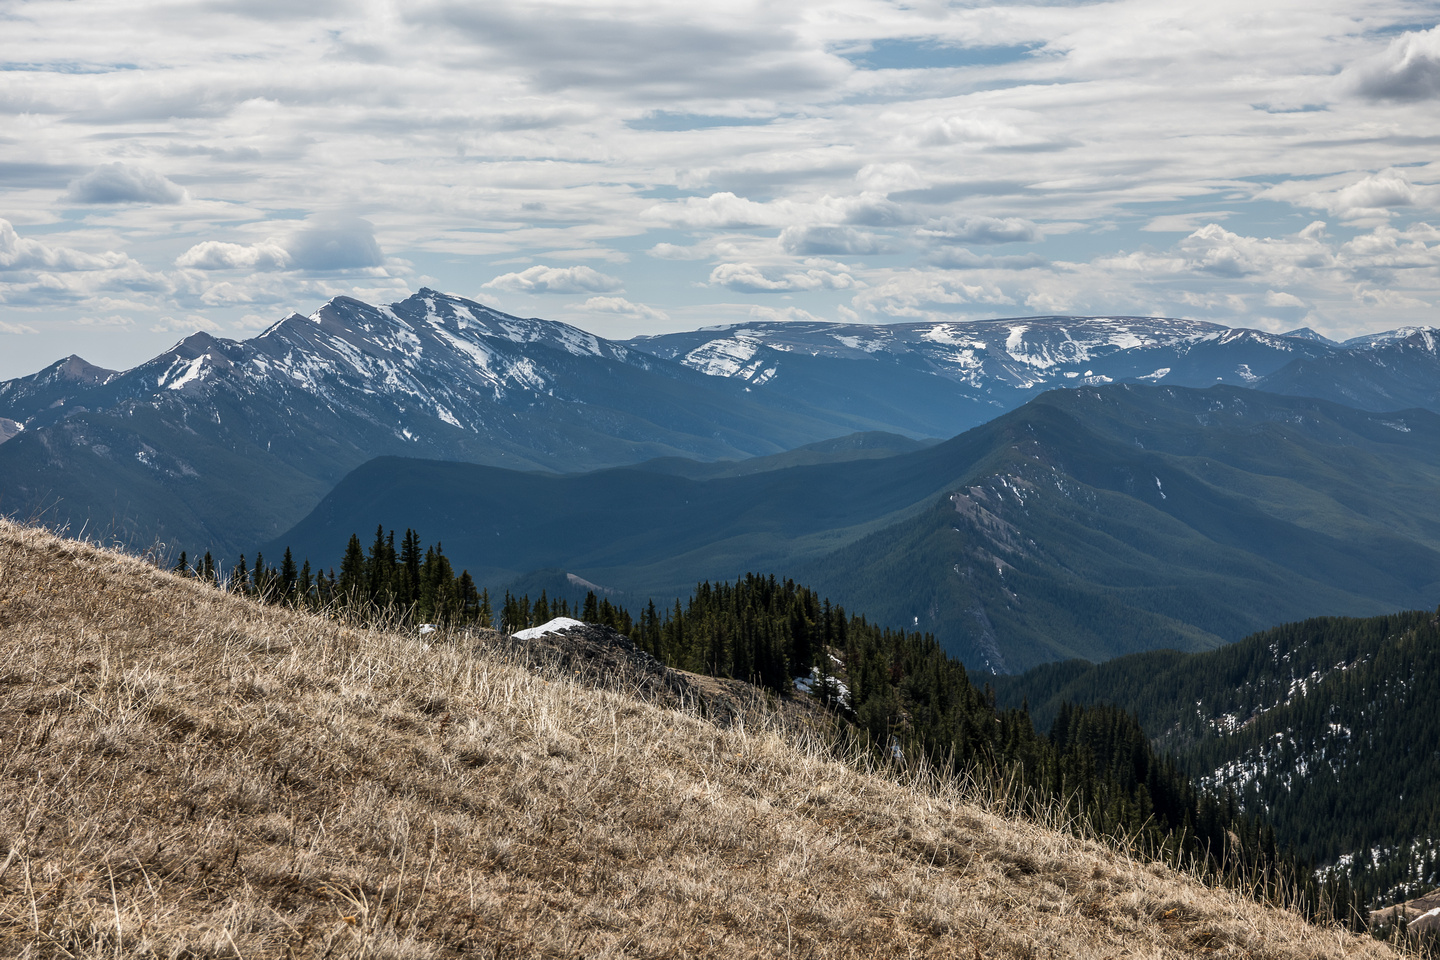 Looking over Mount Mann towards Mount Burke and Plateau Mountain.